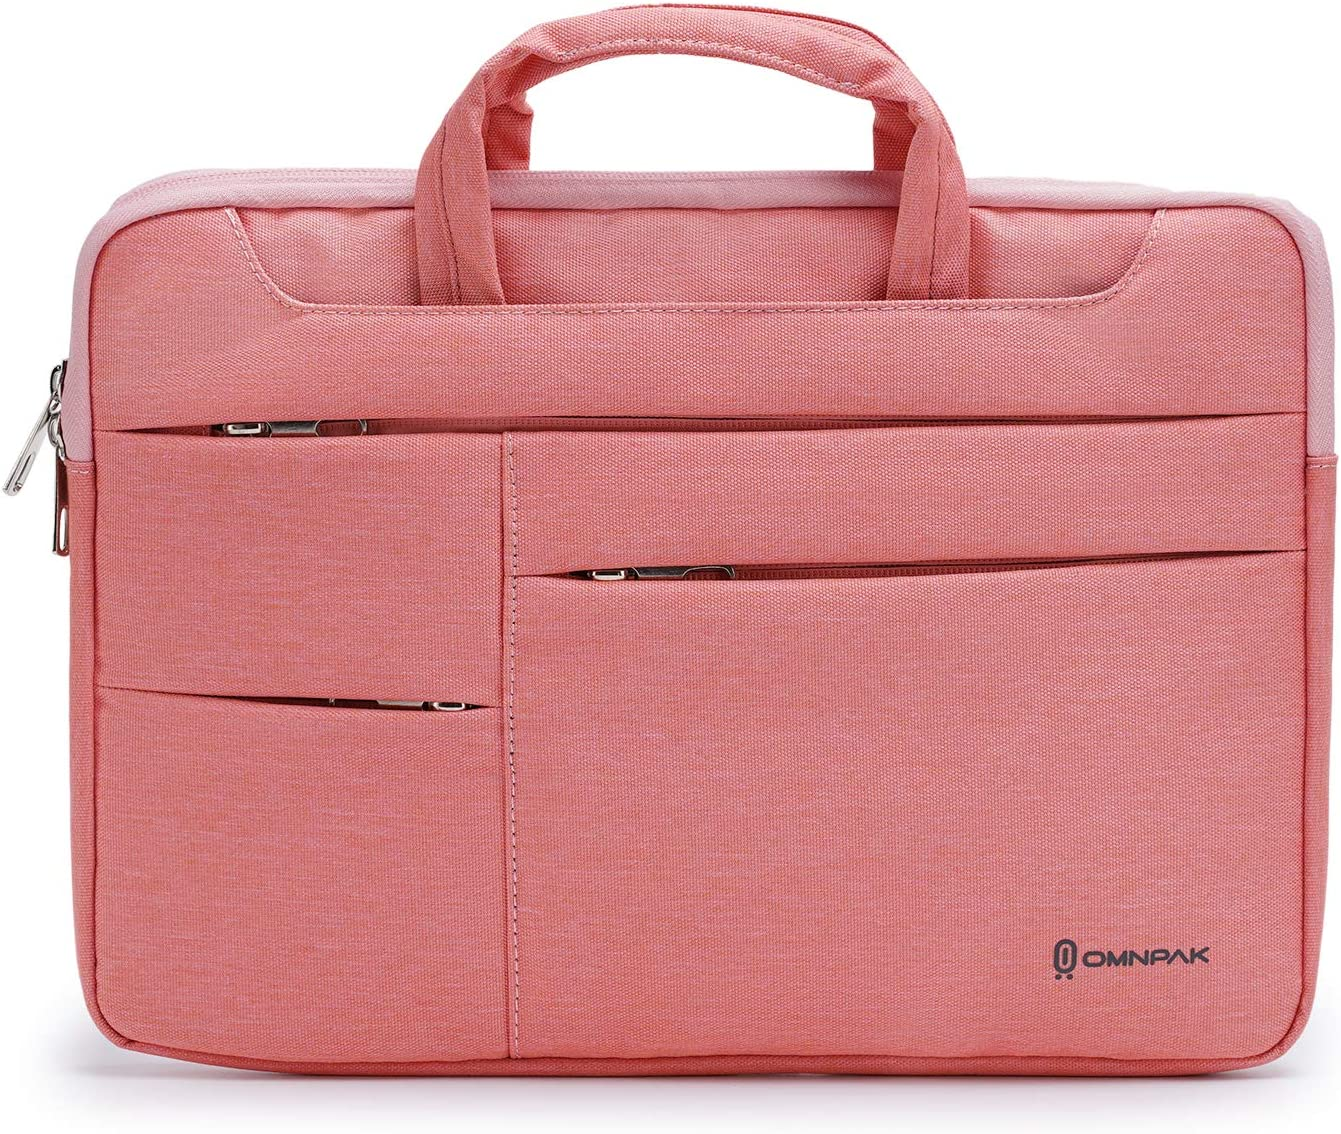 Omnpak 360 Laptop Sleeve Carrying Case for 15.6 Inch Acer Aspire E 15, Water-Resistant Notebook Bag Case for 2020 New Dell XPS 17 Laptop with Accessory Pocket,Red